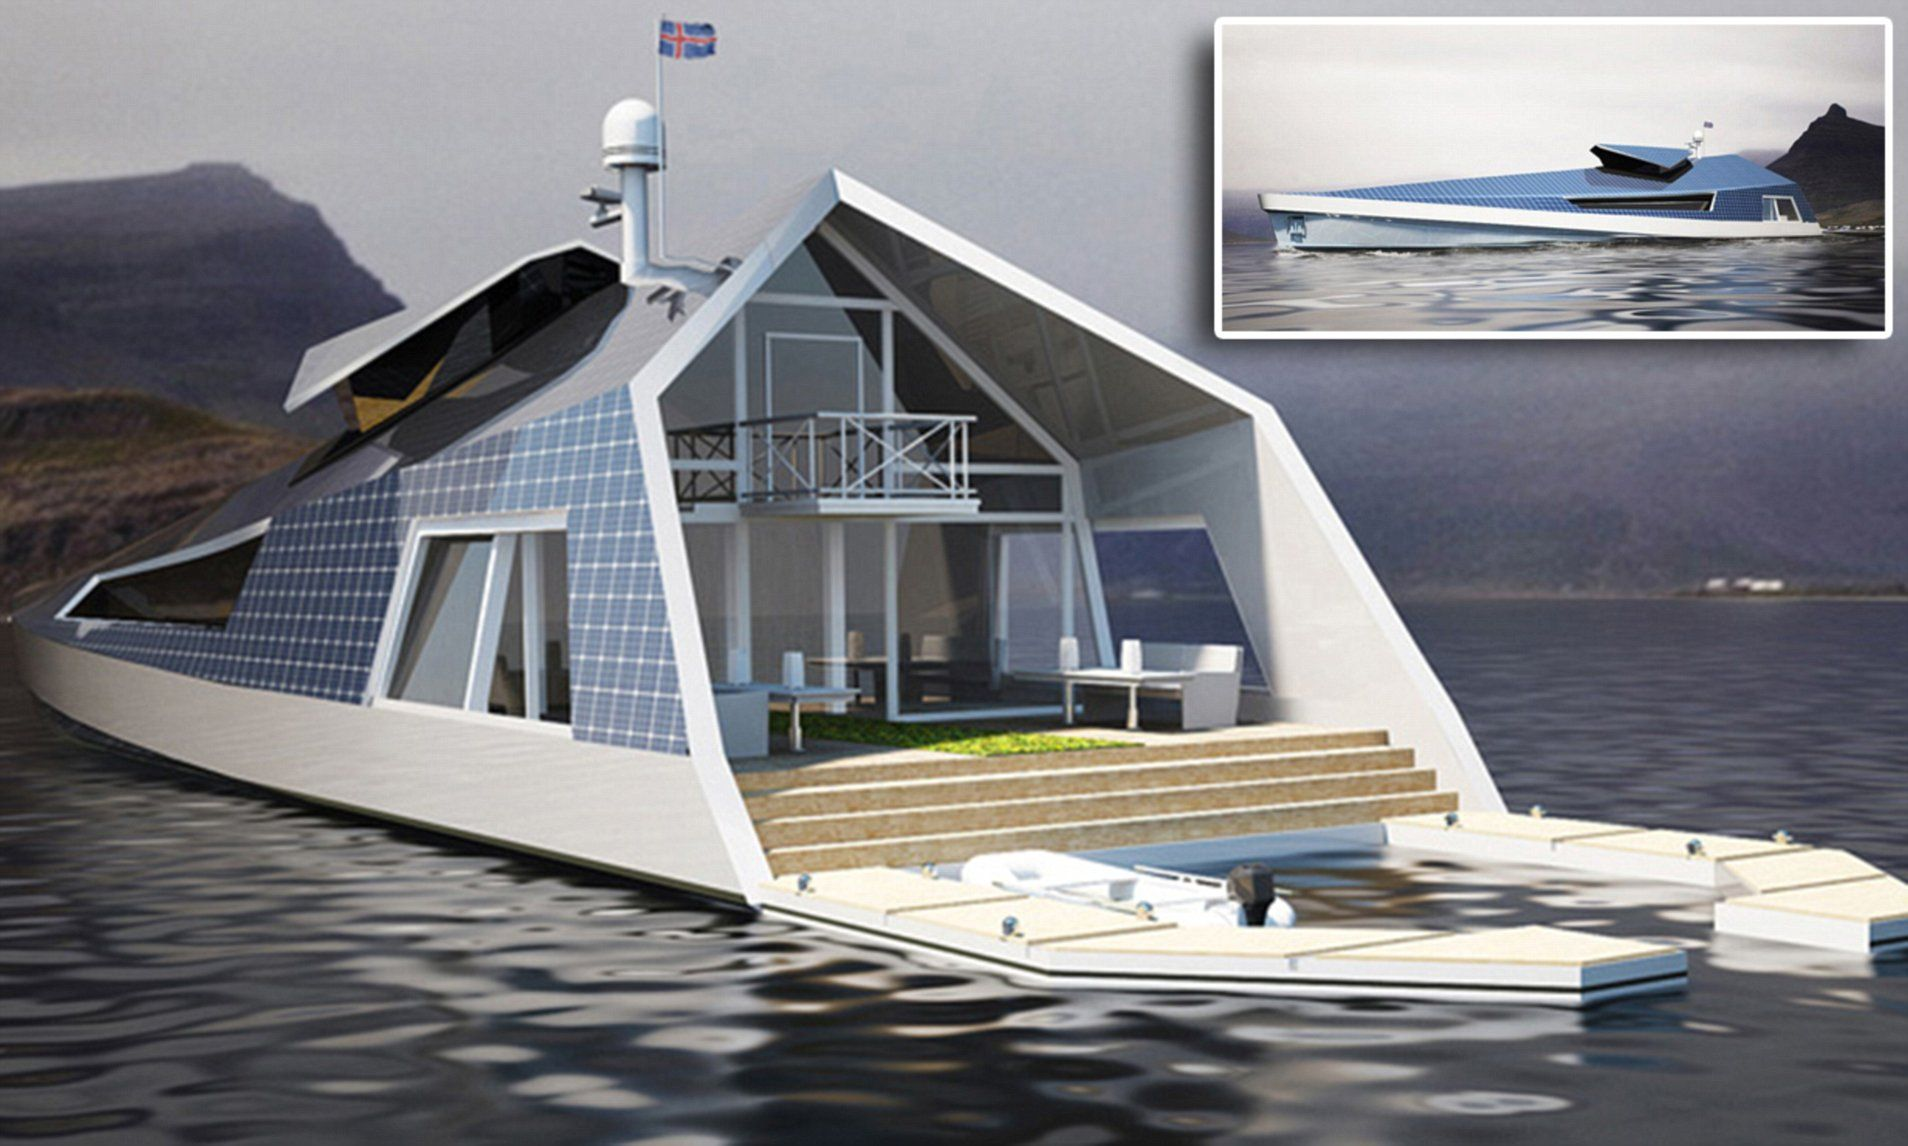 Designer unveils concept for the ultimate houseboat | House ... on future of boats, future armored vehicles, future navy boats, future space stations, future pontoon boats, future animals, future cruisers, future race boats, future boat design, future speed boats, future architecture concepts, future cargo boats, future boats yachts, future seaplanes, future atv, future technology, future townhouses, future power boats, future homes,